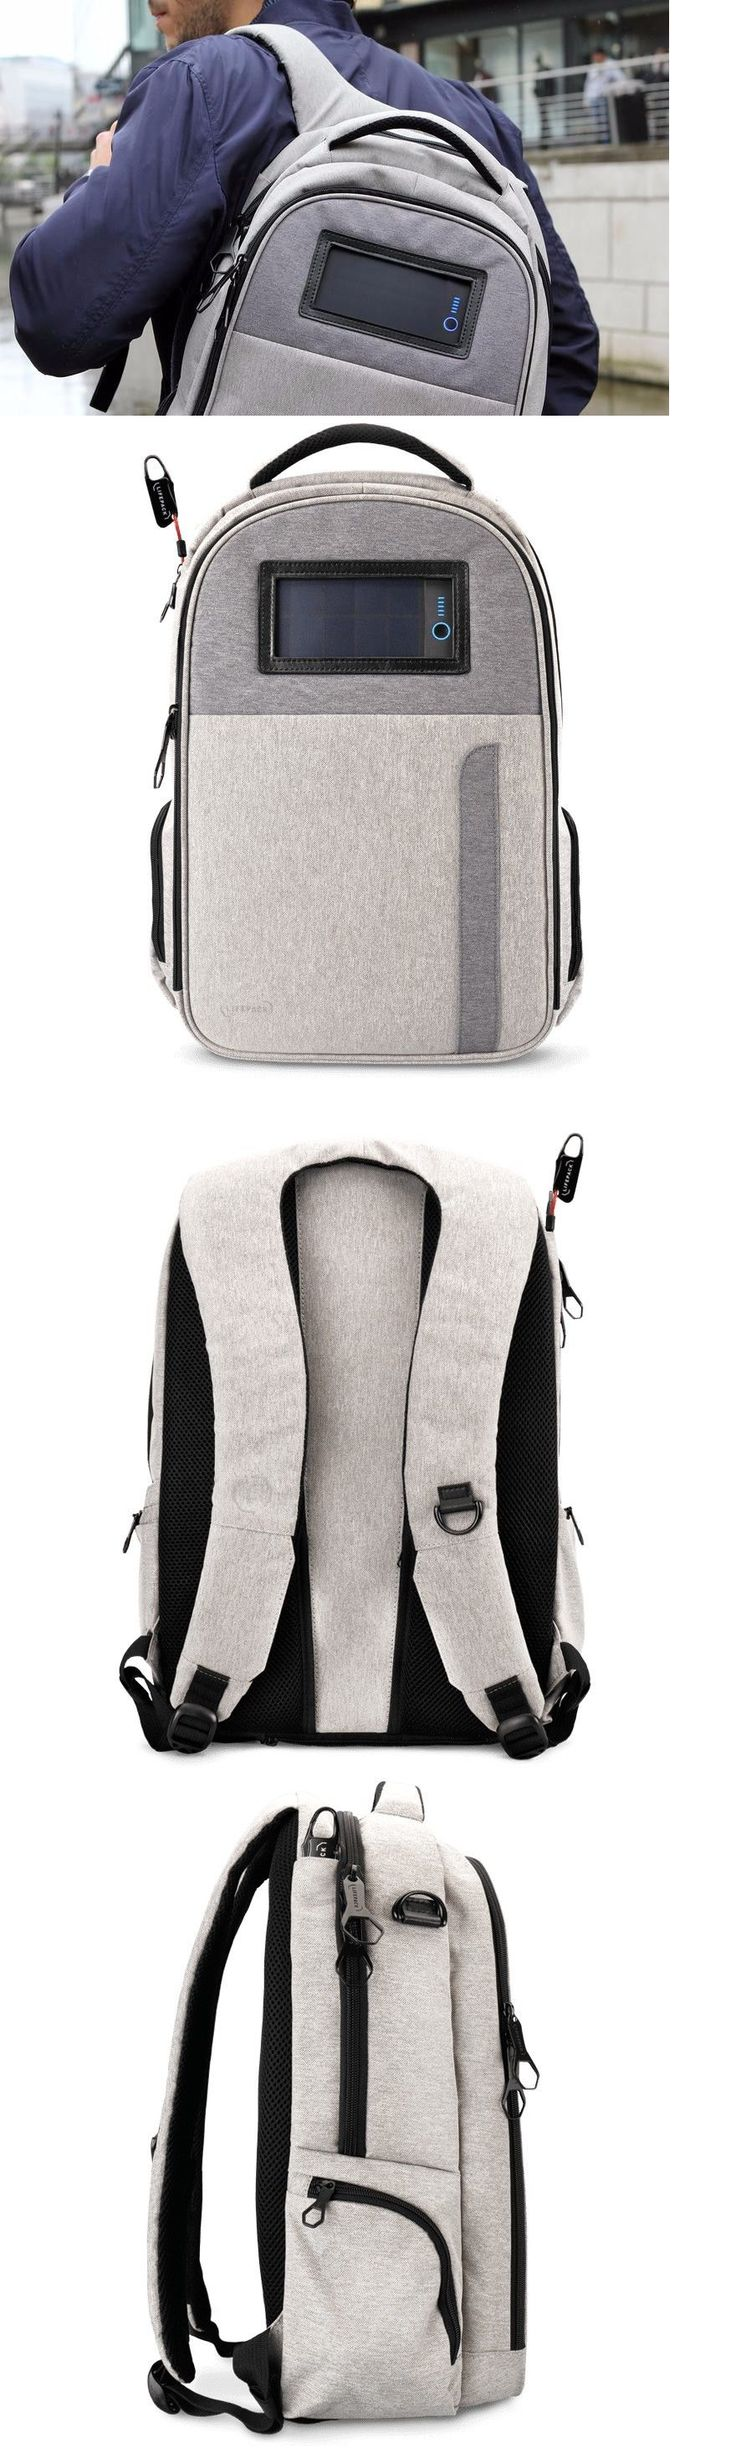 Portable Stereos Boomboxes: Solar Powered Backpack With Bluetooth Speaker, Headphones, Secret Pocket, Laptop -> BUY IT NOW ONLY: $269 on eBay!